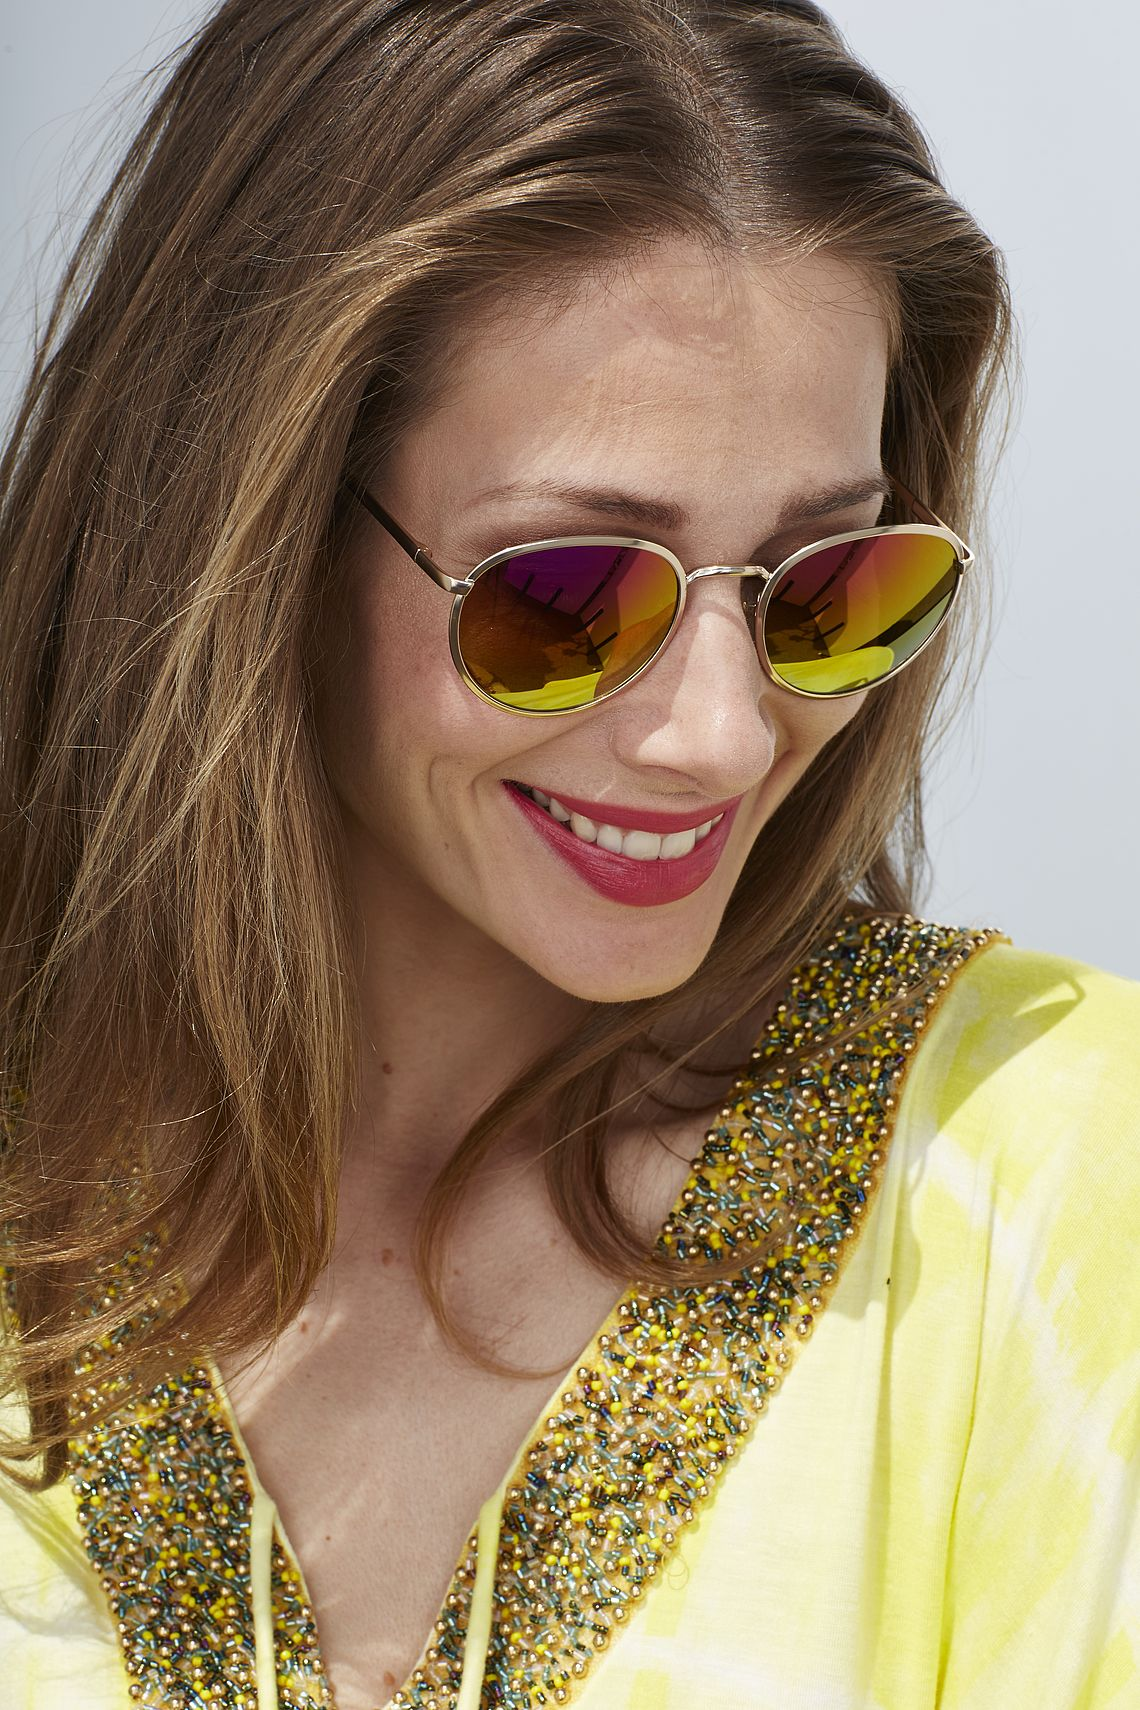 Smiling woman with sunglasses 300110